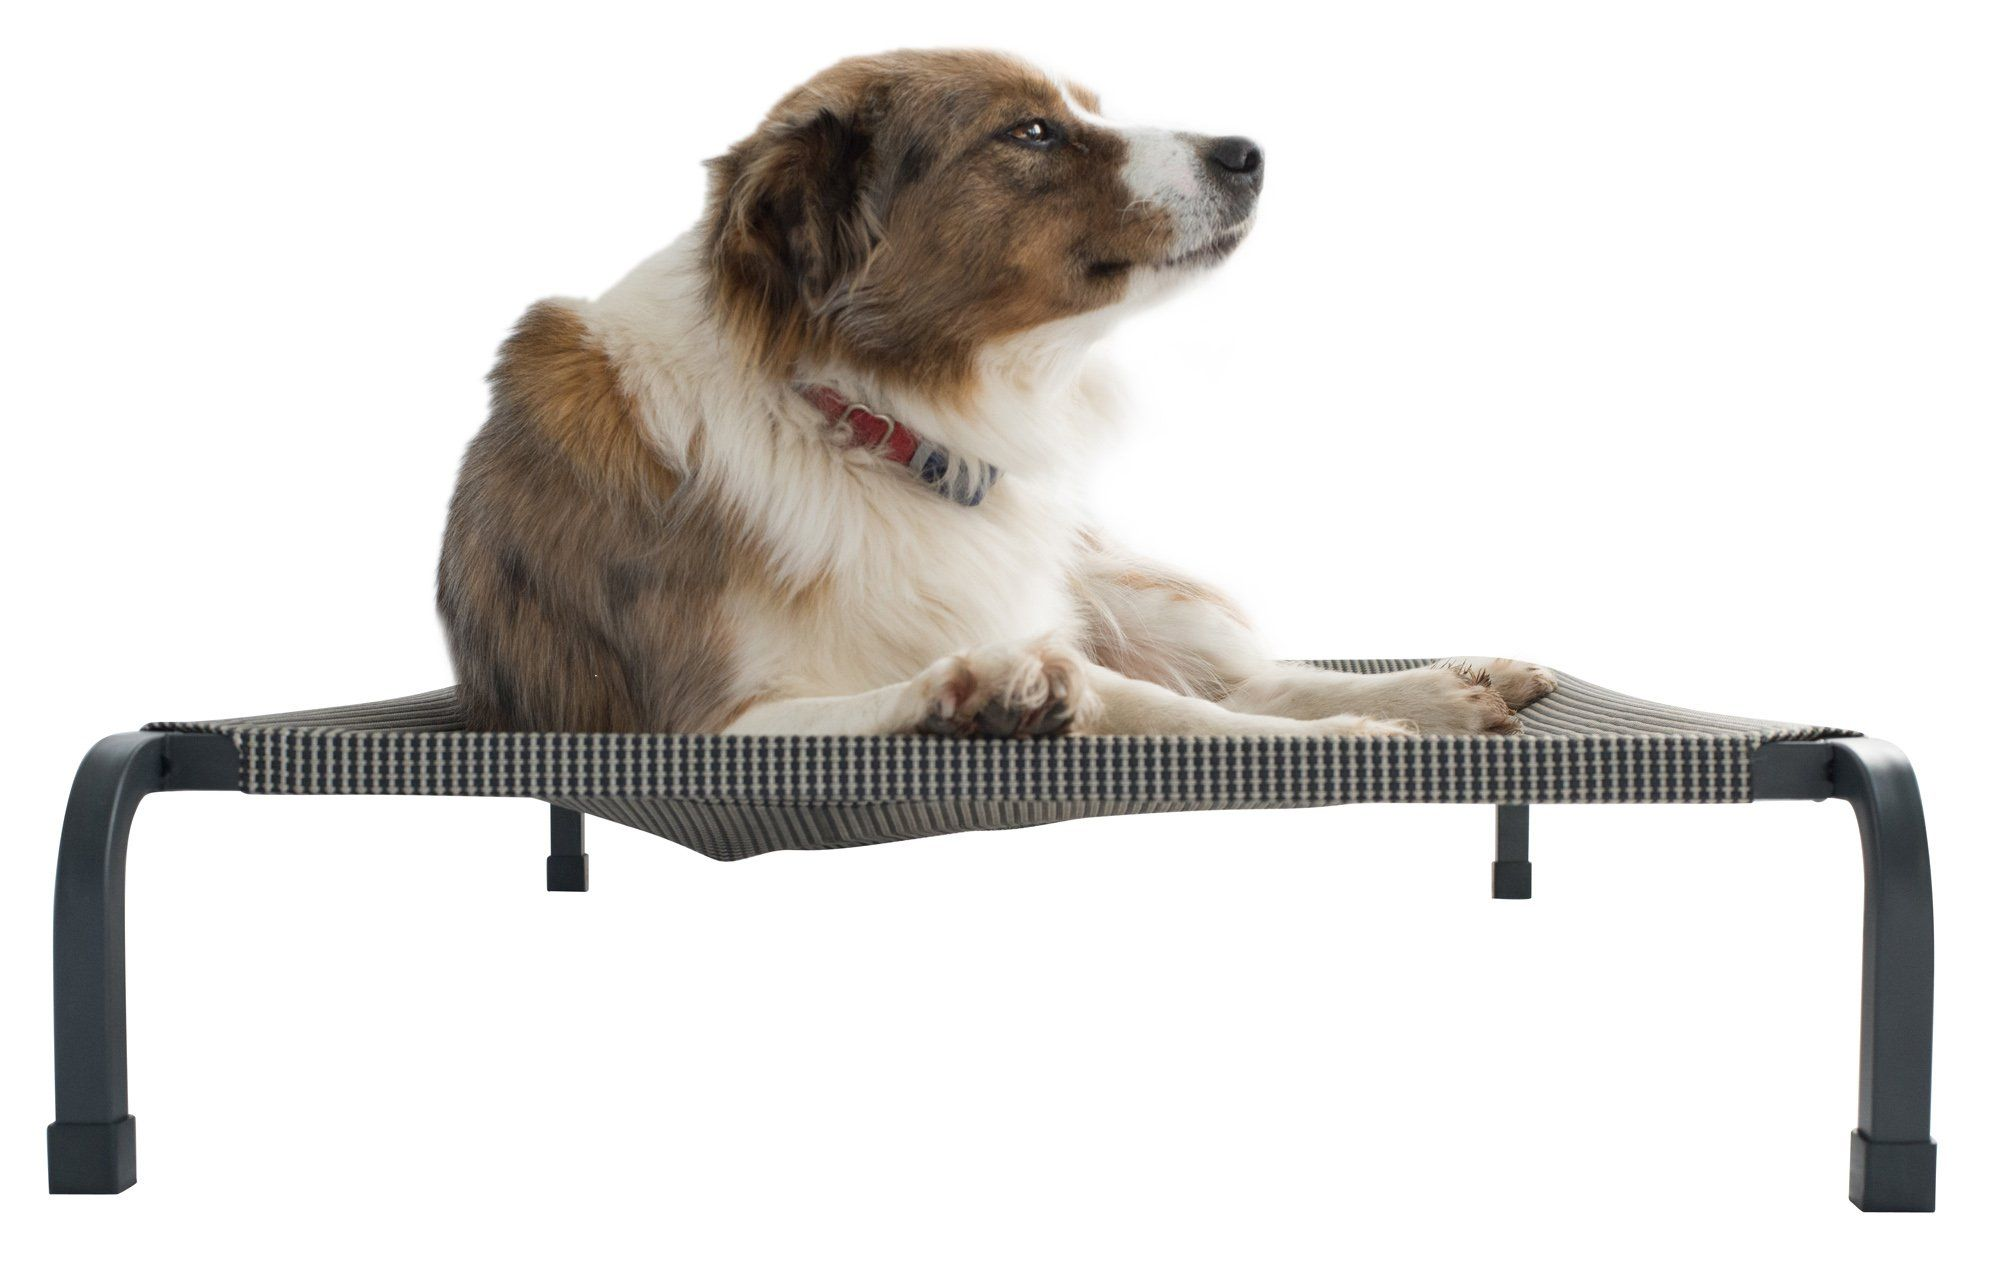 Fiksu Pets Heavy Duty Elevated Pet Bed Medium With Extremely Durable Breathable Tear Resistant Mesh Cover With Steel Square Tube Frame Che Pets Dogs Pet Bed